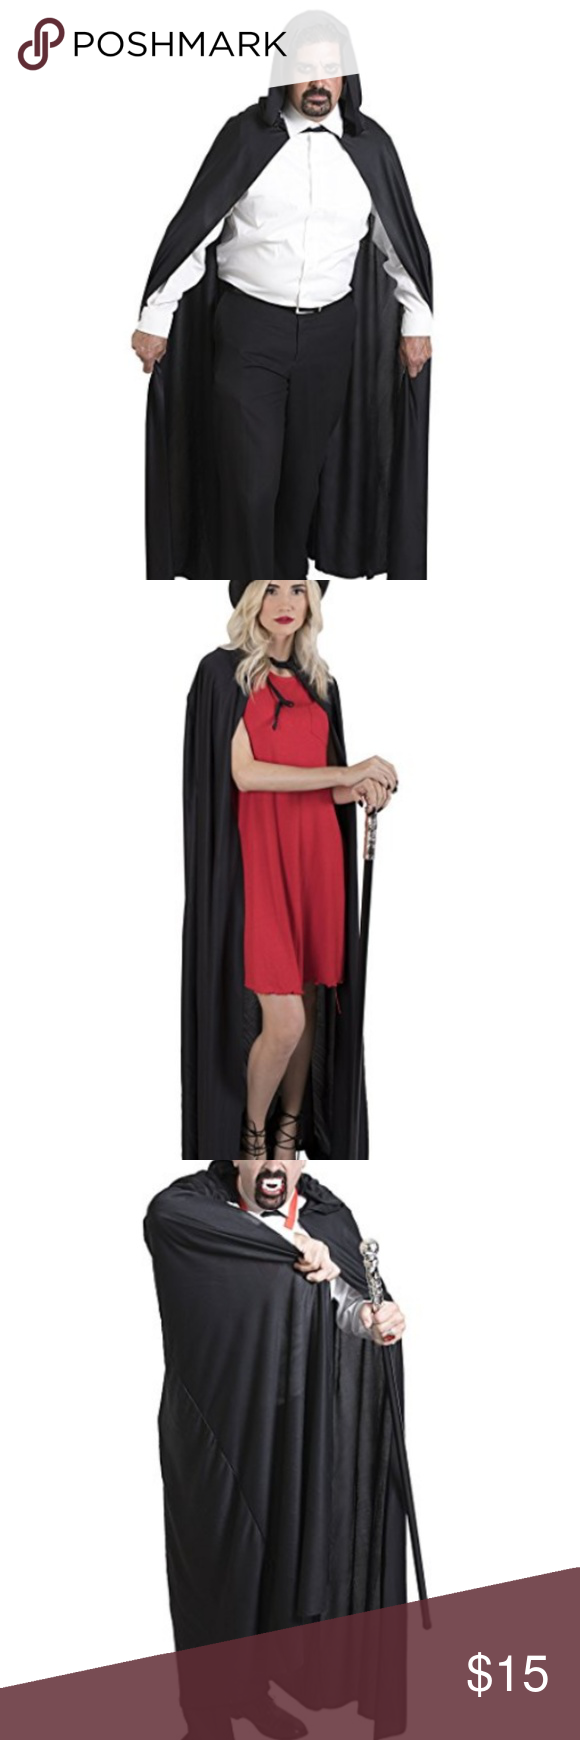 Adult halloween long black hooded cape one size nwt long black